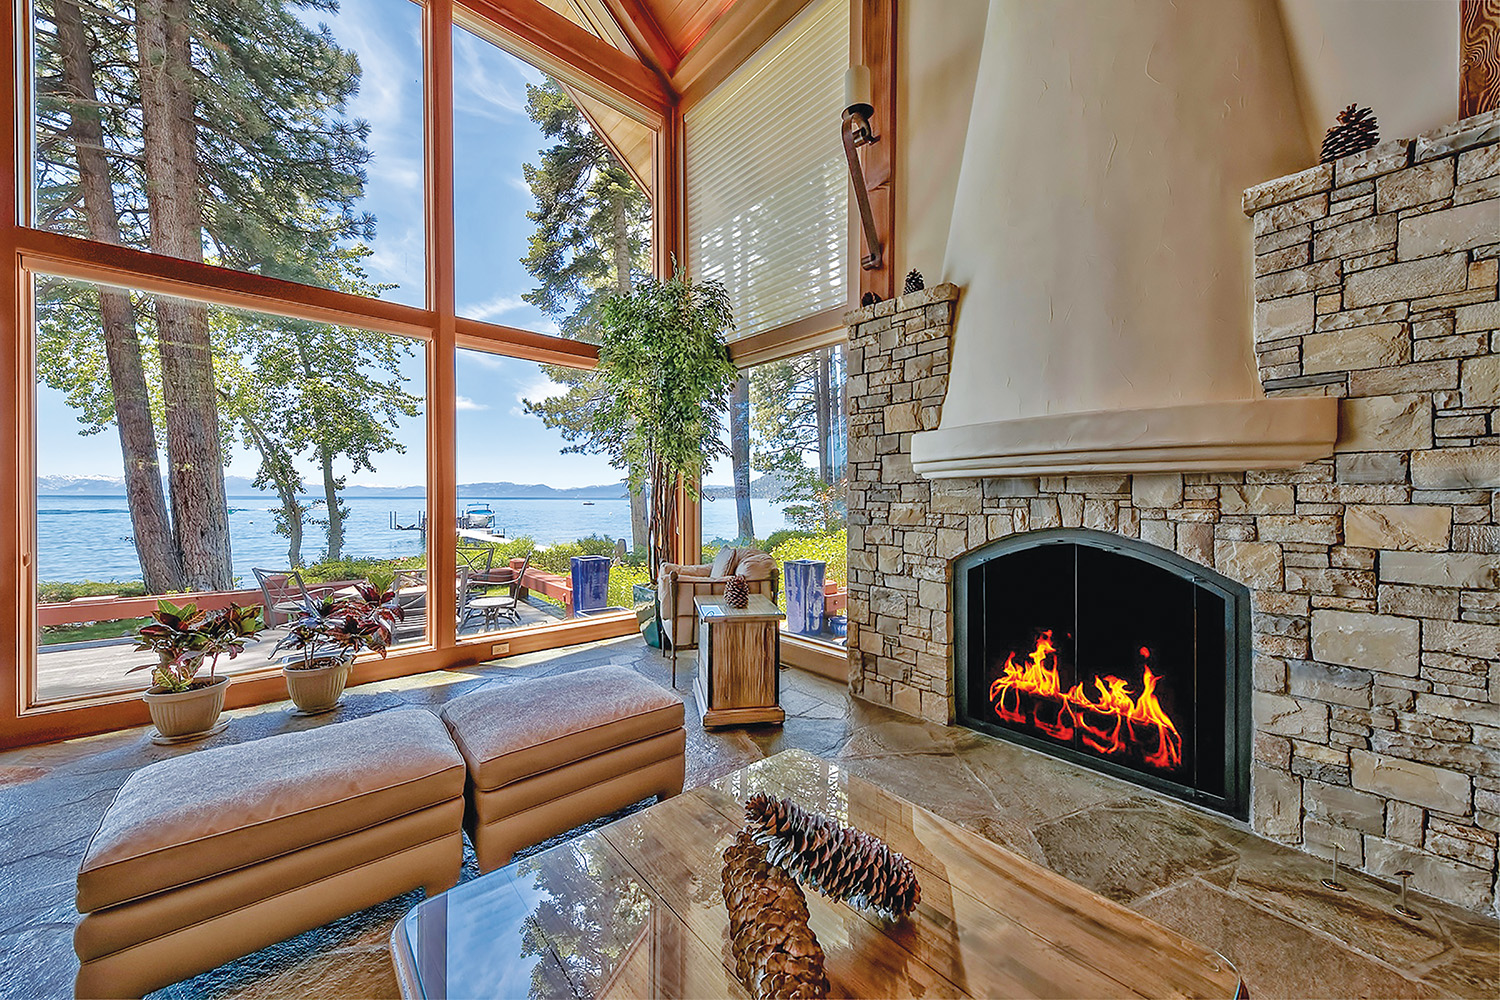 863 Lakeshore Blvd. Incline Village, NV, listed for $17,000,000